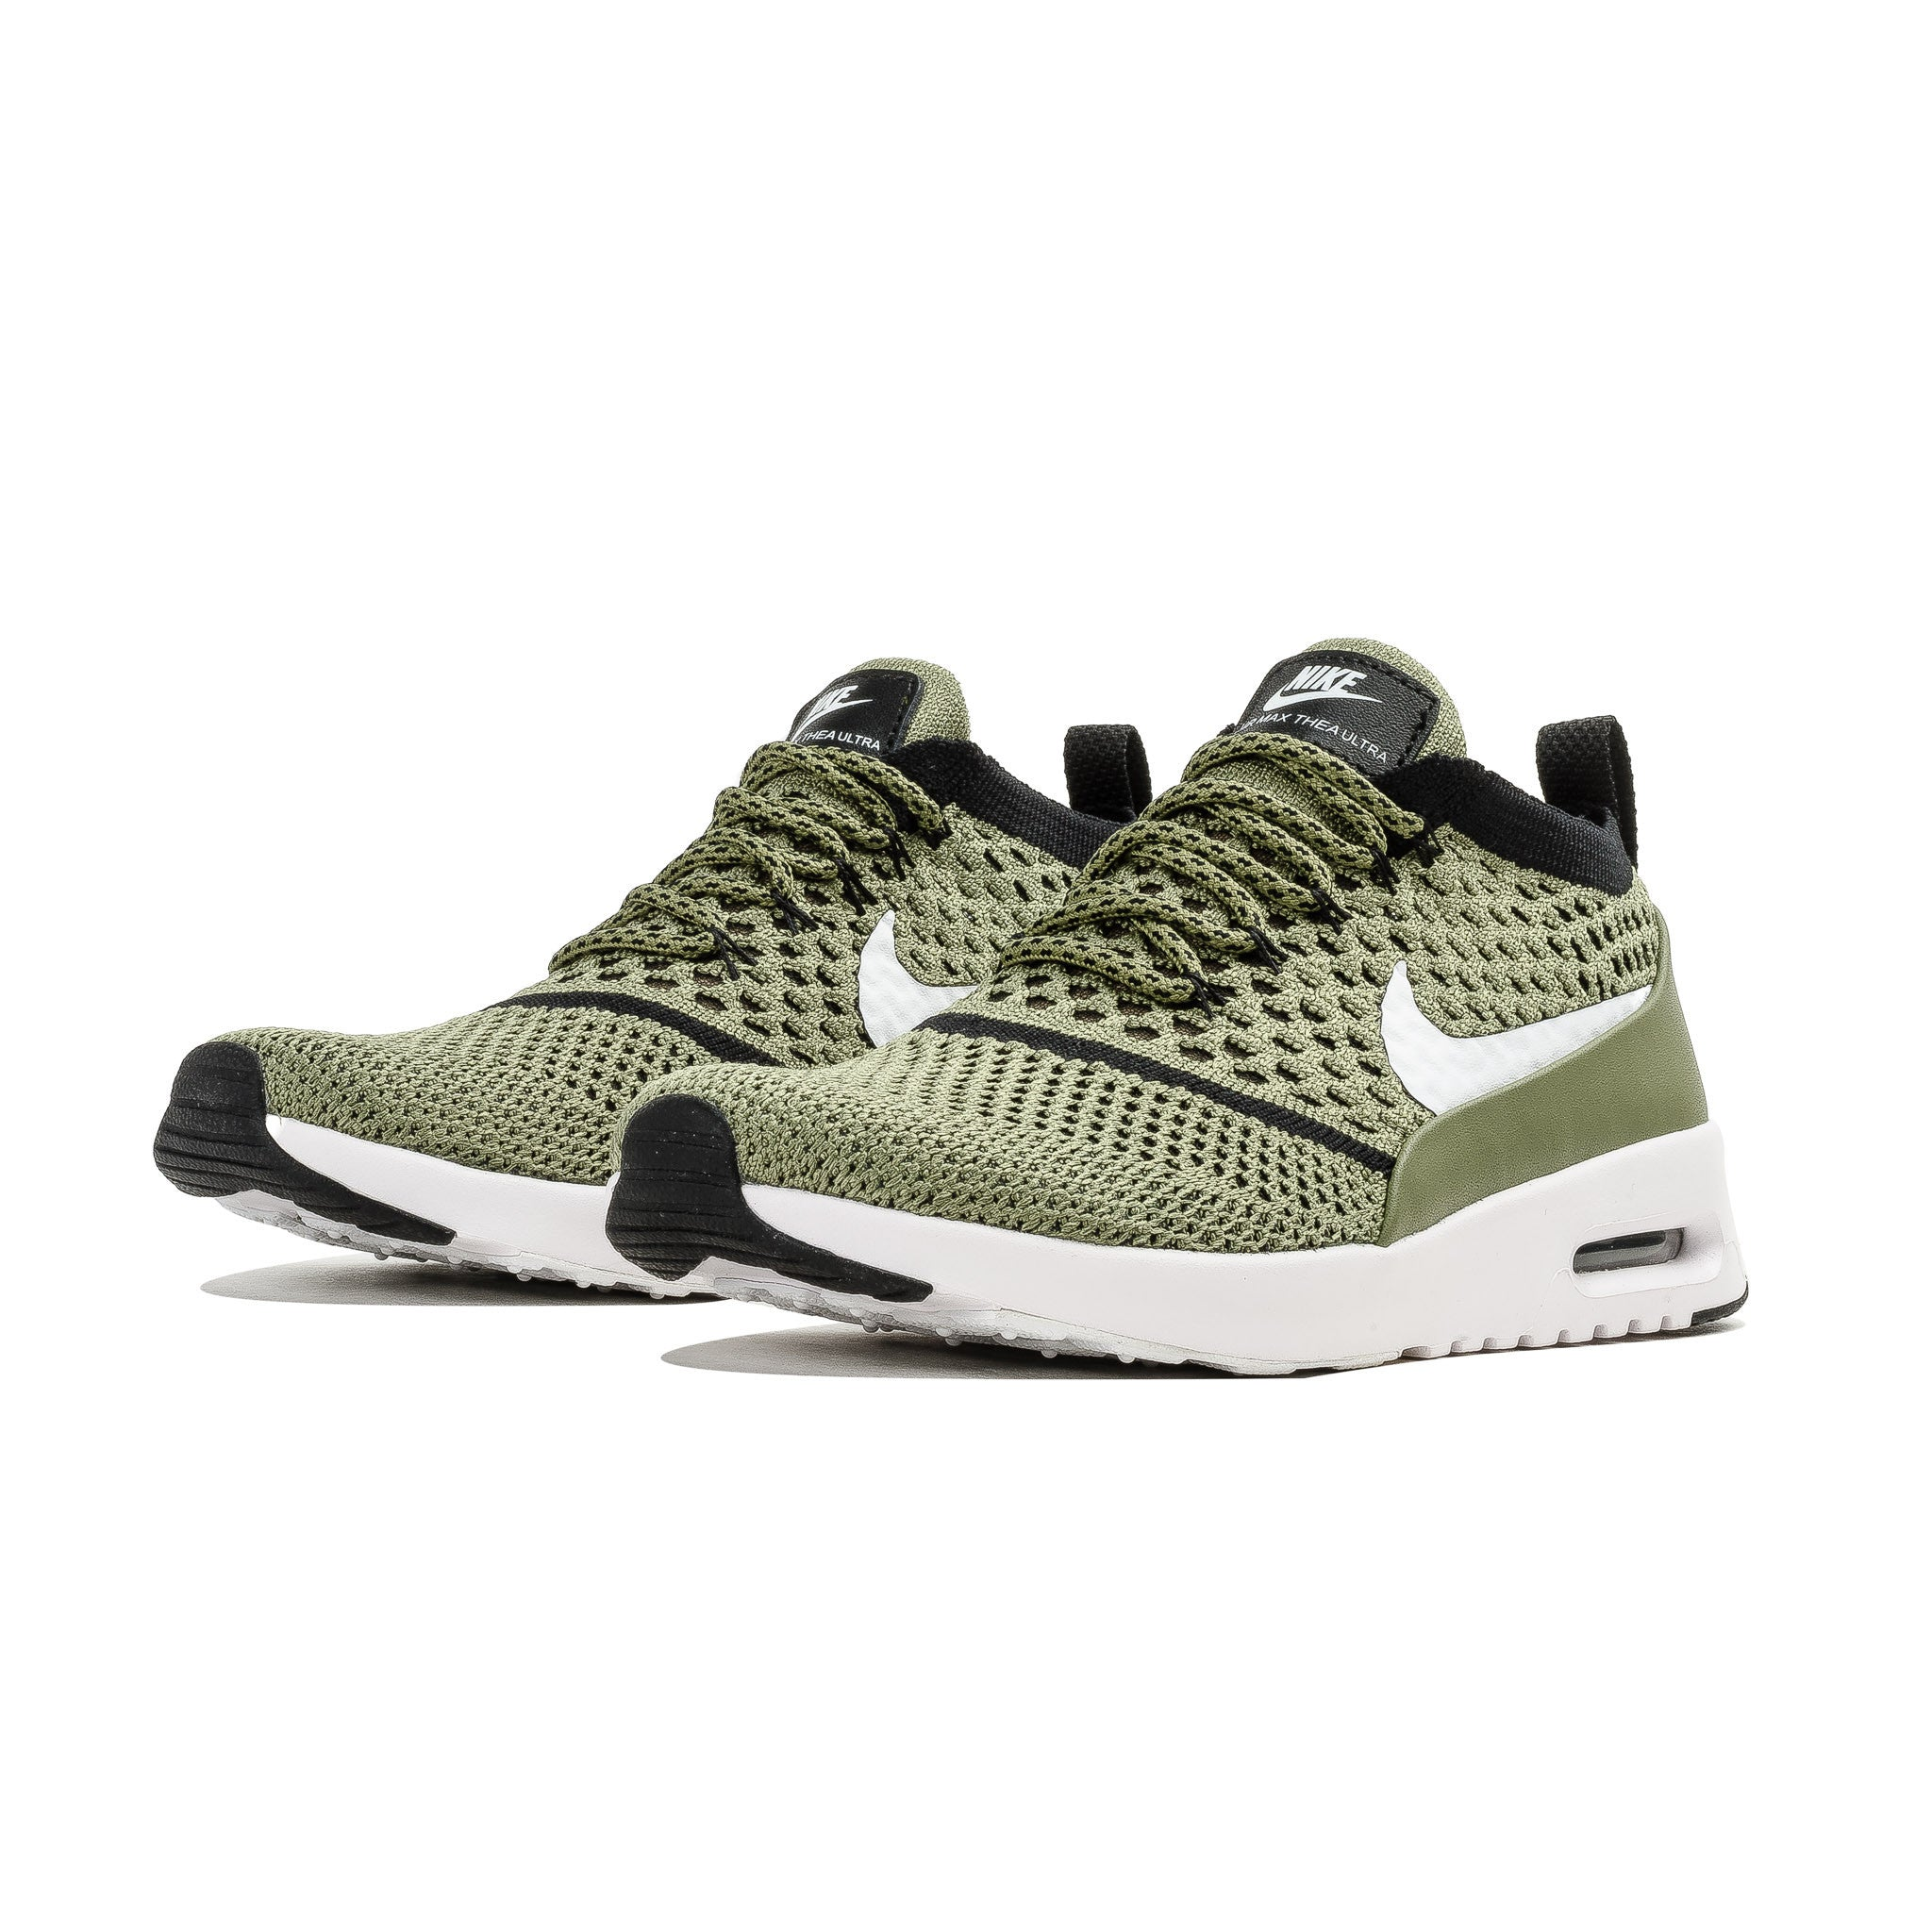 0cc42c9d6929 ... australia w air max thea ultra flyknit 881175 300 palm green 53575  9dc5e promo code for nike ...